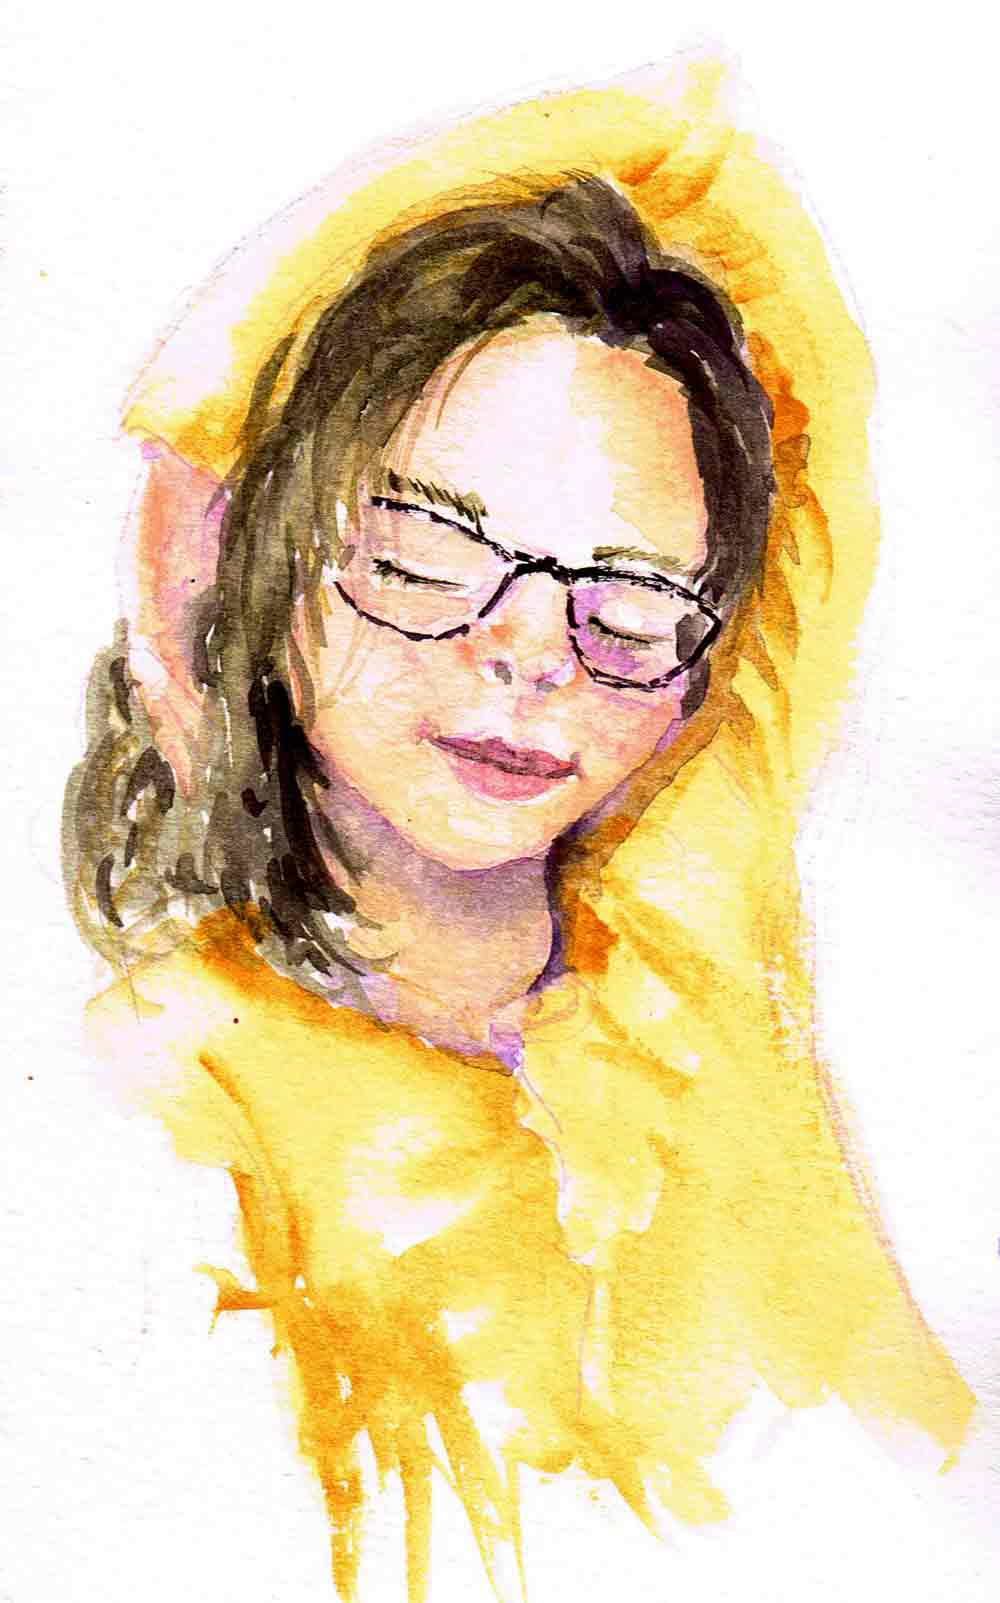 Watercolour-Portraits-3-Thoughtful-Rest-kw.jpg